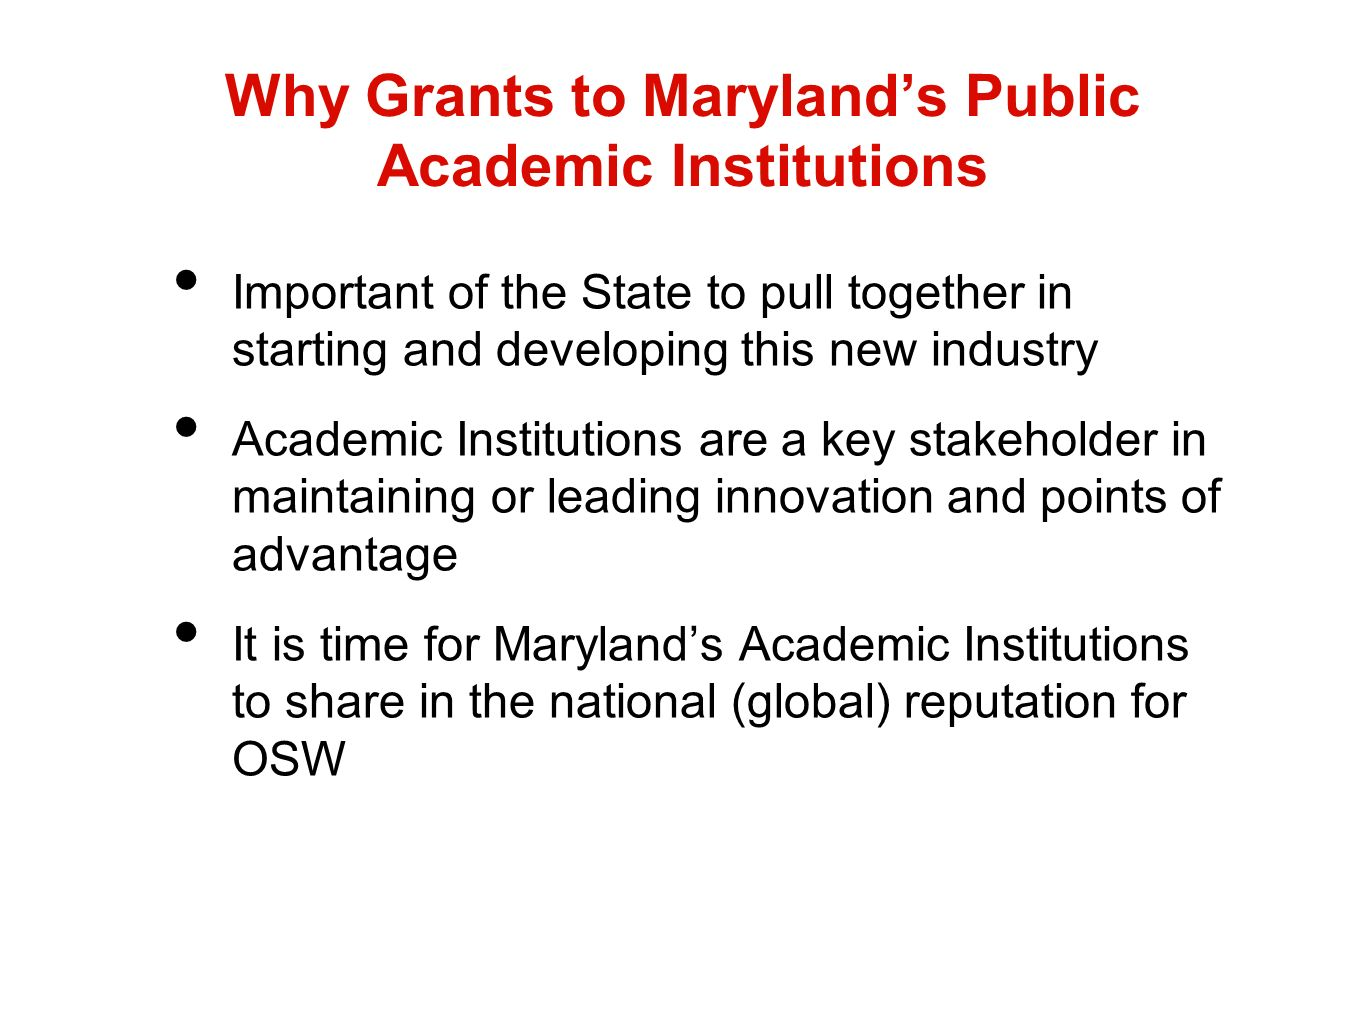 Why Grants to Marylands Public Academic Institutions Important of the State to pull together in starting and developing this new industry Academic Institutions are a key stakeholder in maintaining or leading innovation and points of advantage It is time for Marylands Academic Institutions to share in the national (global) reputation for OSW